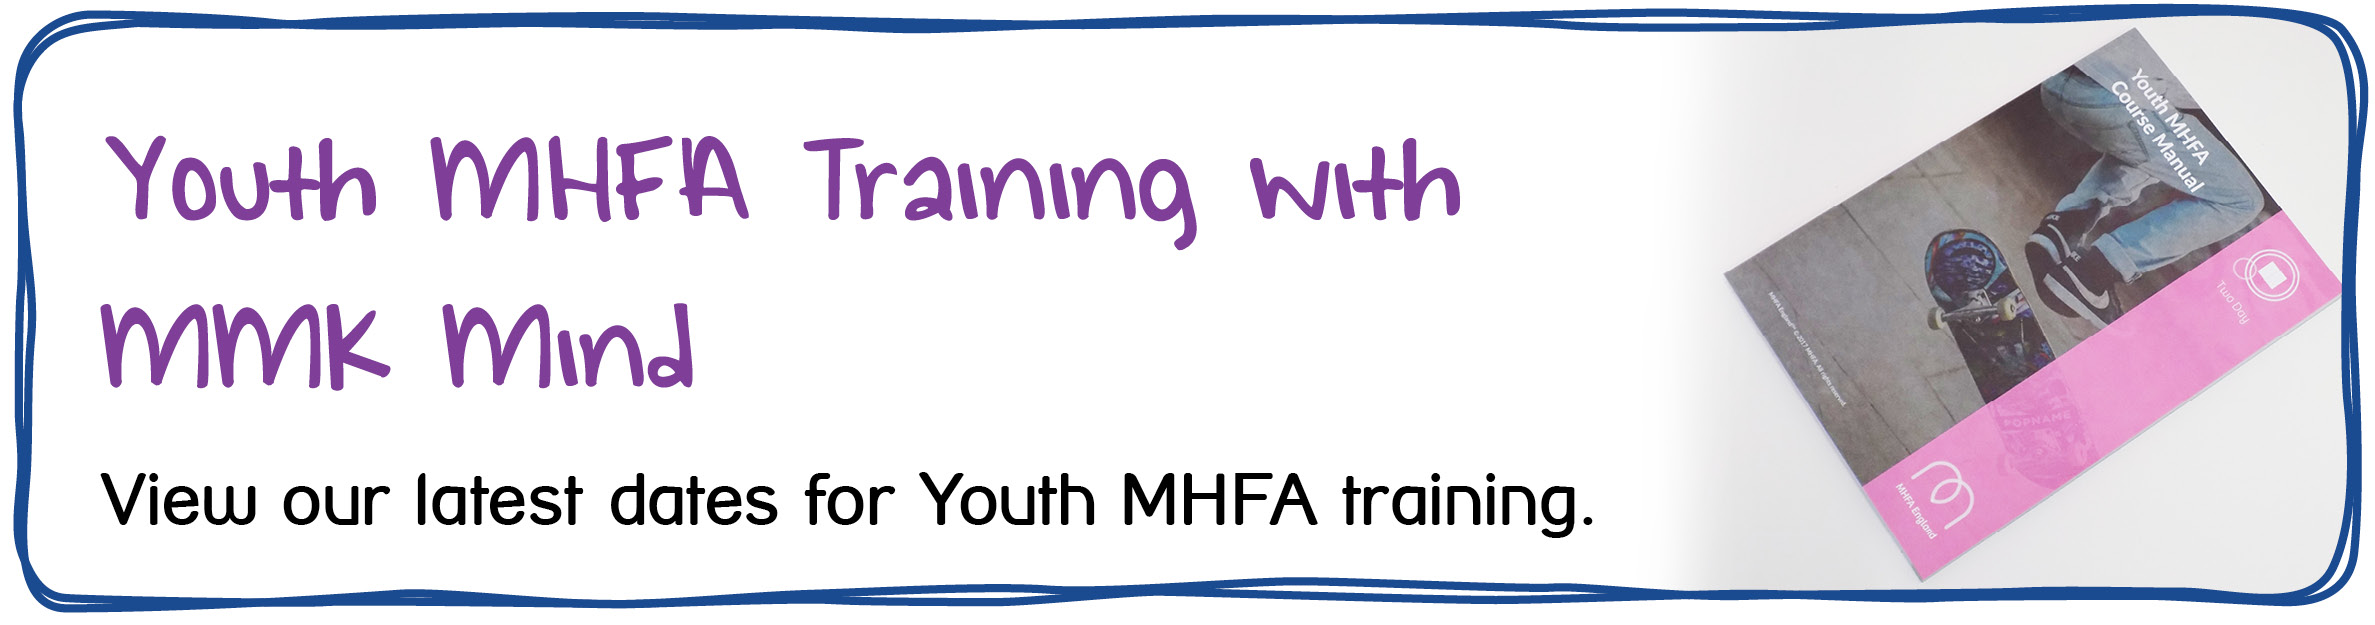 MHFA Youth 2-Day - Youth MHFA Training with MMK Mind. View our latest dates for Youth MHFA training.